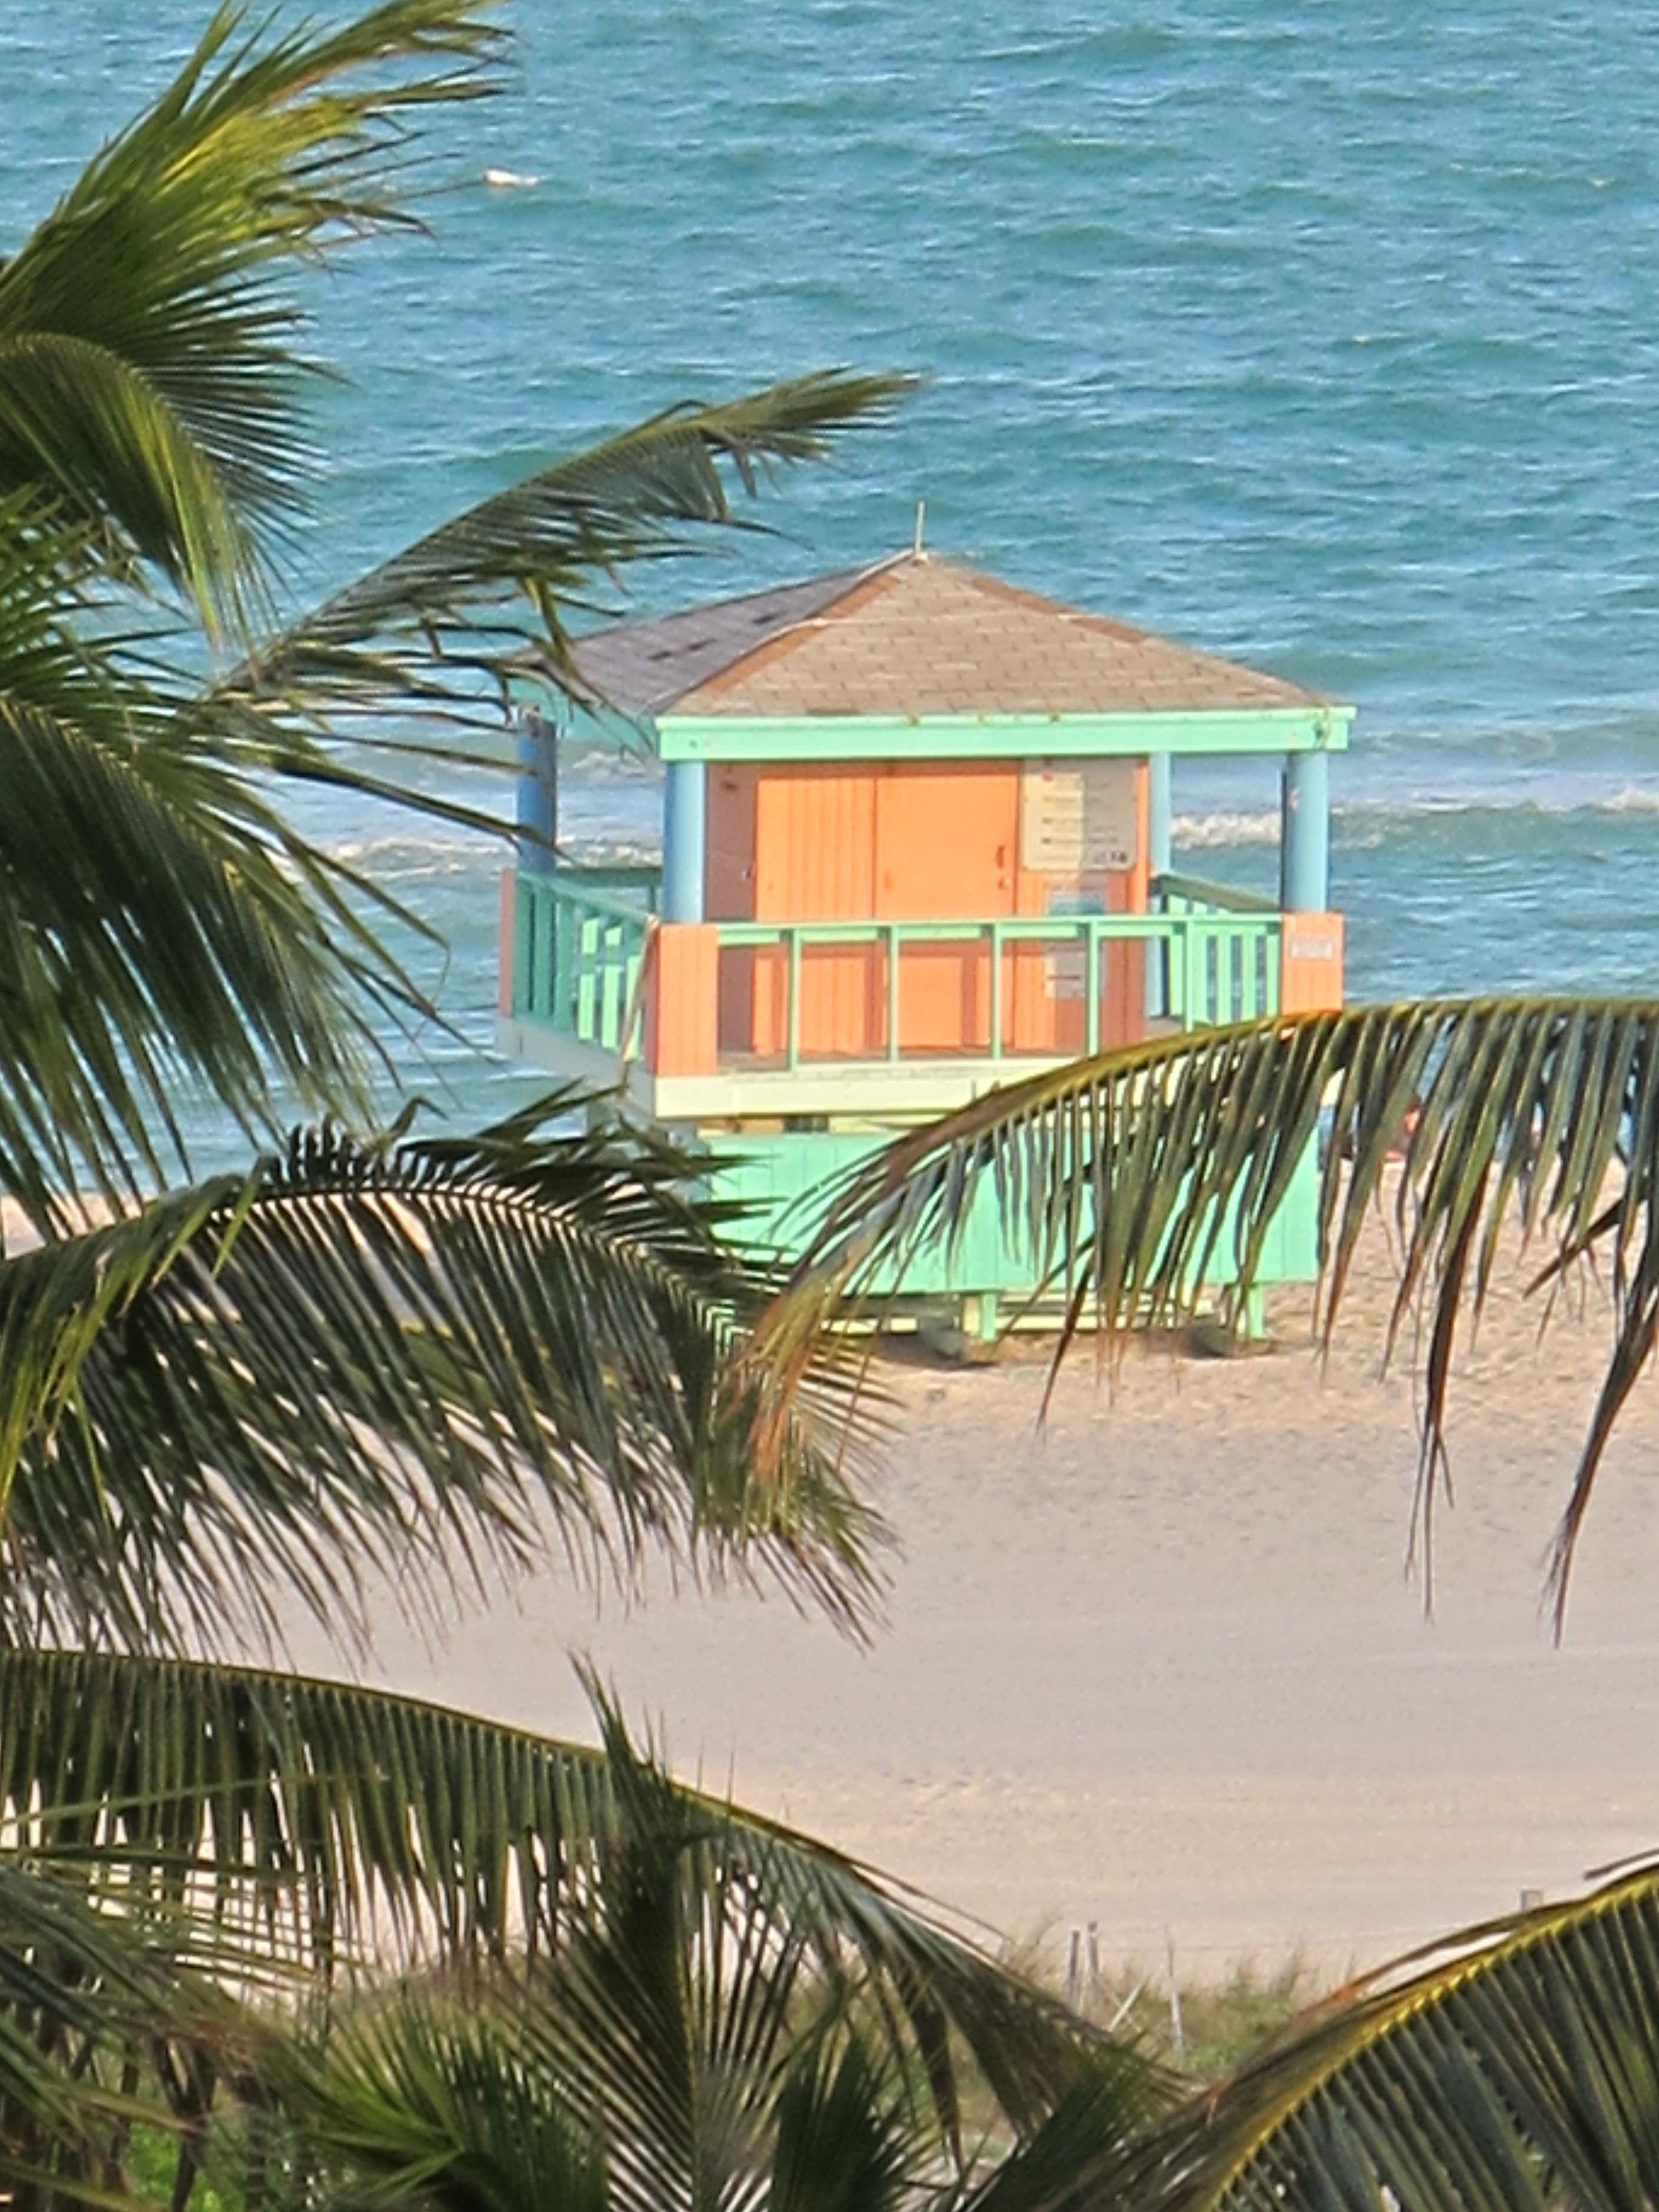 """USA Today Travel - """"The Betsy South Beach (Luxury): At this luxurious, four-star/four-diamond boutique hotel, the staff-to-guest ratio is 3 to 1. Plus, it has the city's only open-air rooftop spa, has a No. 1 rating on TripAdvisor and is the only hotel to be awarded the Knight Foundation Arts Challenge Grant for its Writer's Room. thebetsyhotel.com; 866-792-3879"""" (Dec. 2013)"""